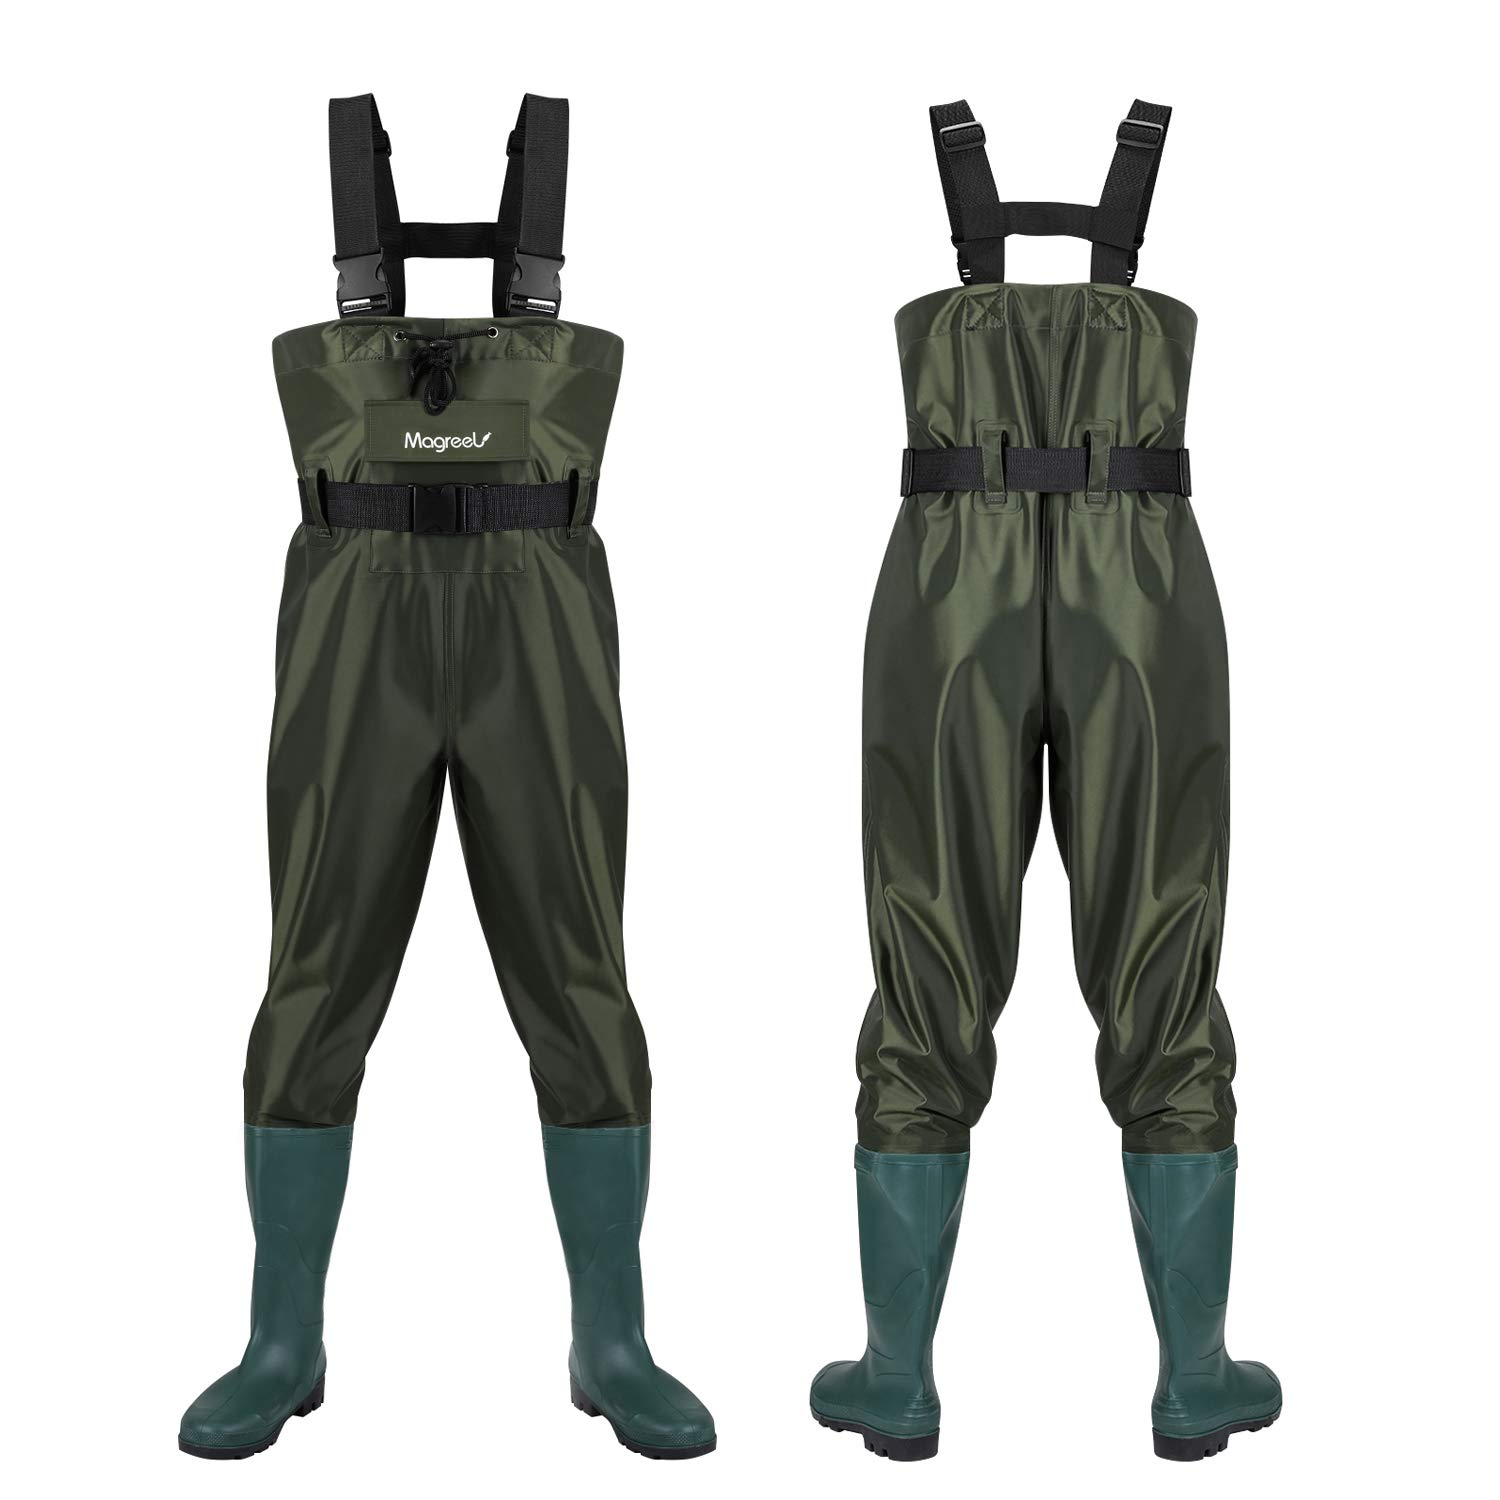 Magreel Chest Waders,Hunting Fishing Waders for Men Women with Boots,Waterproof Bootfoot Nylon PVC Wader, Size 7 -Size 14